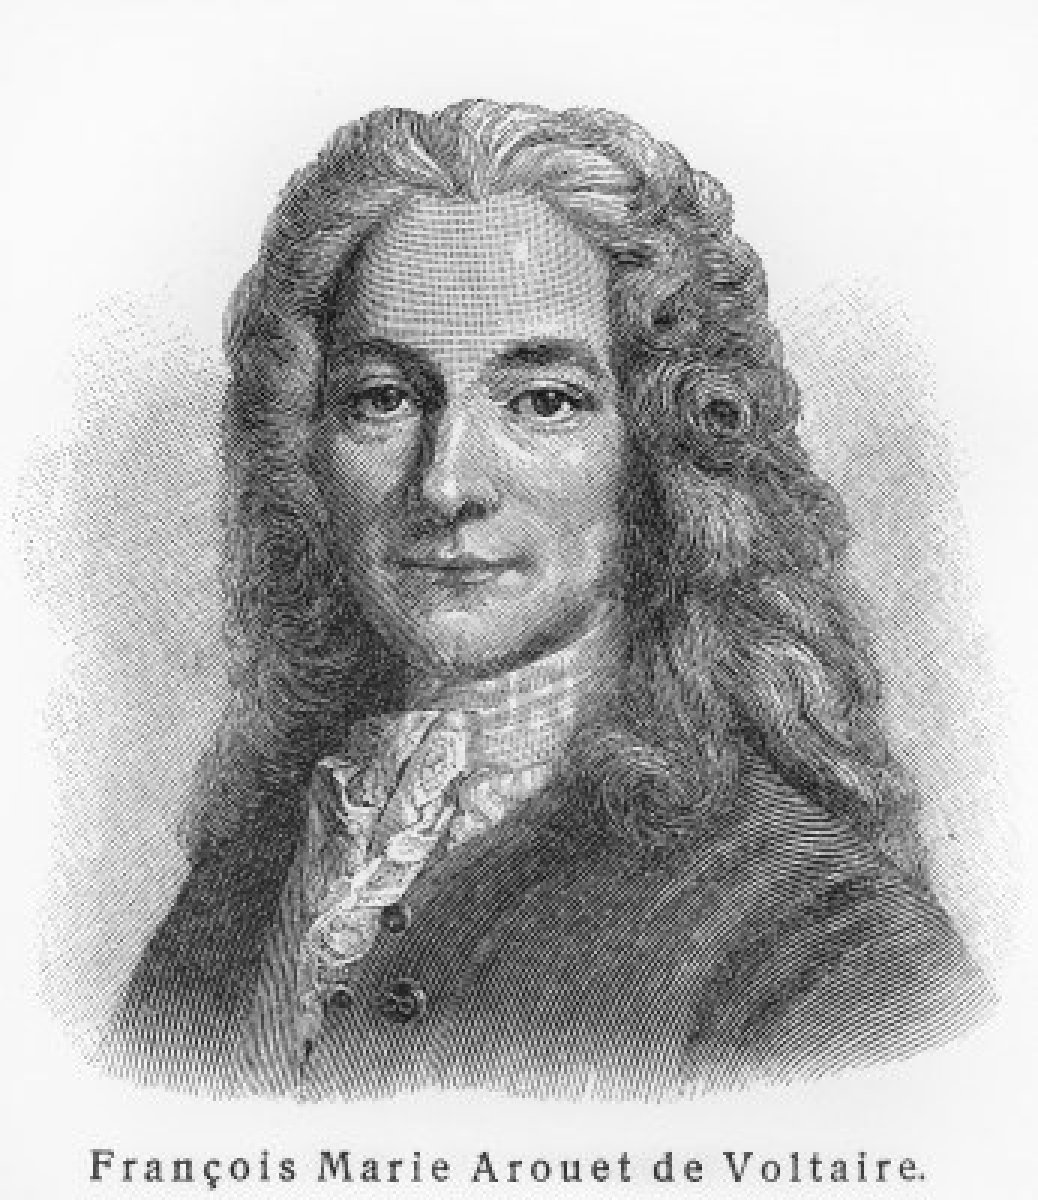 essays on voltaire homework writing service essays on voltaire